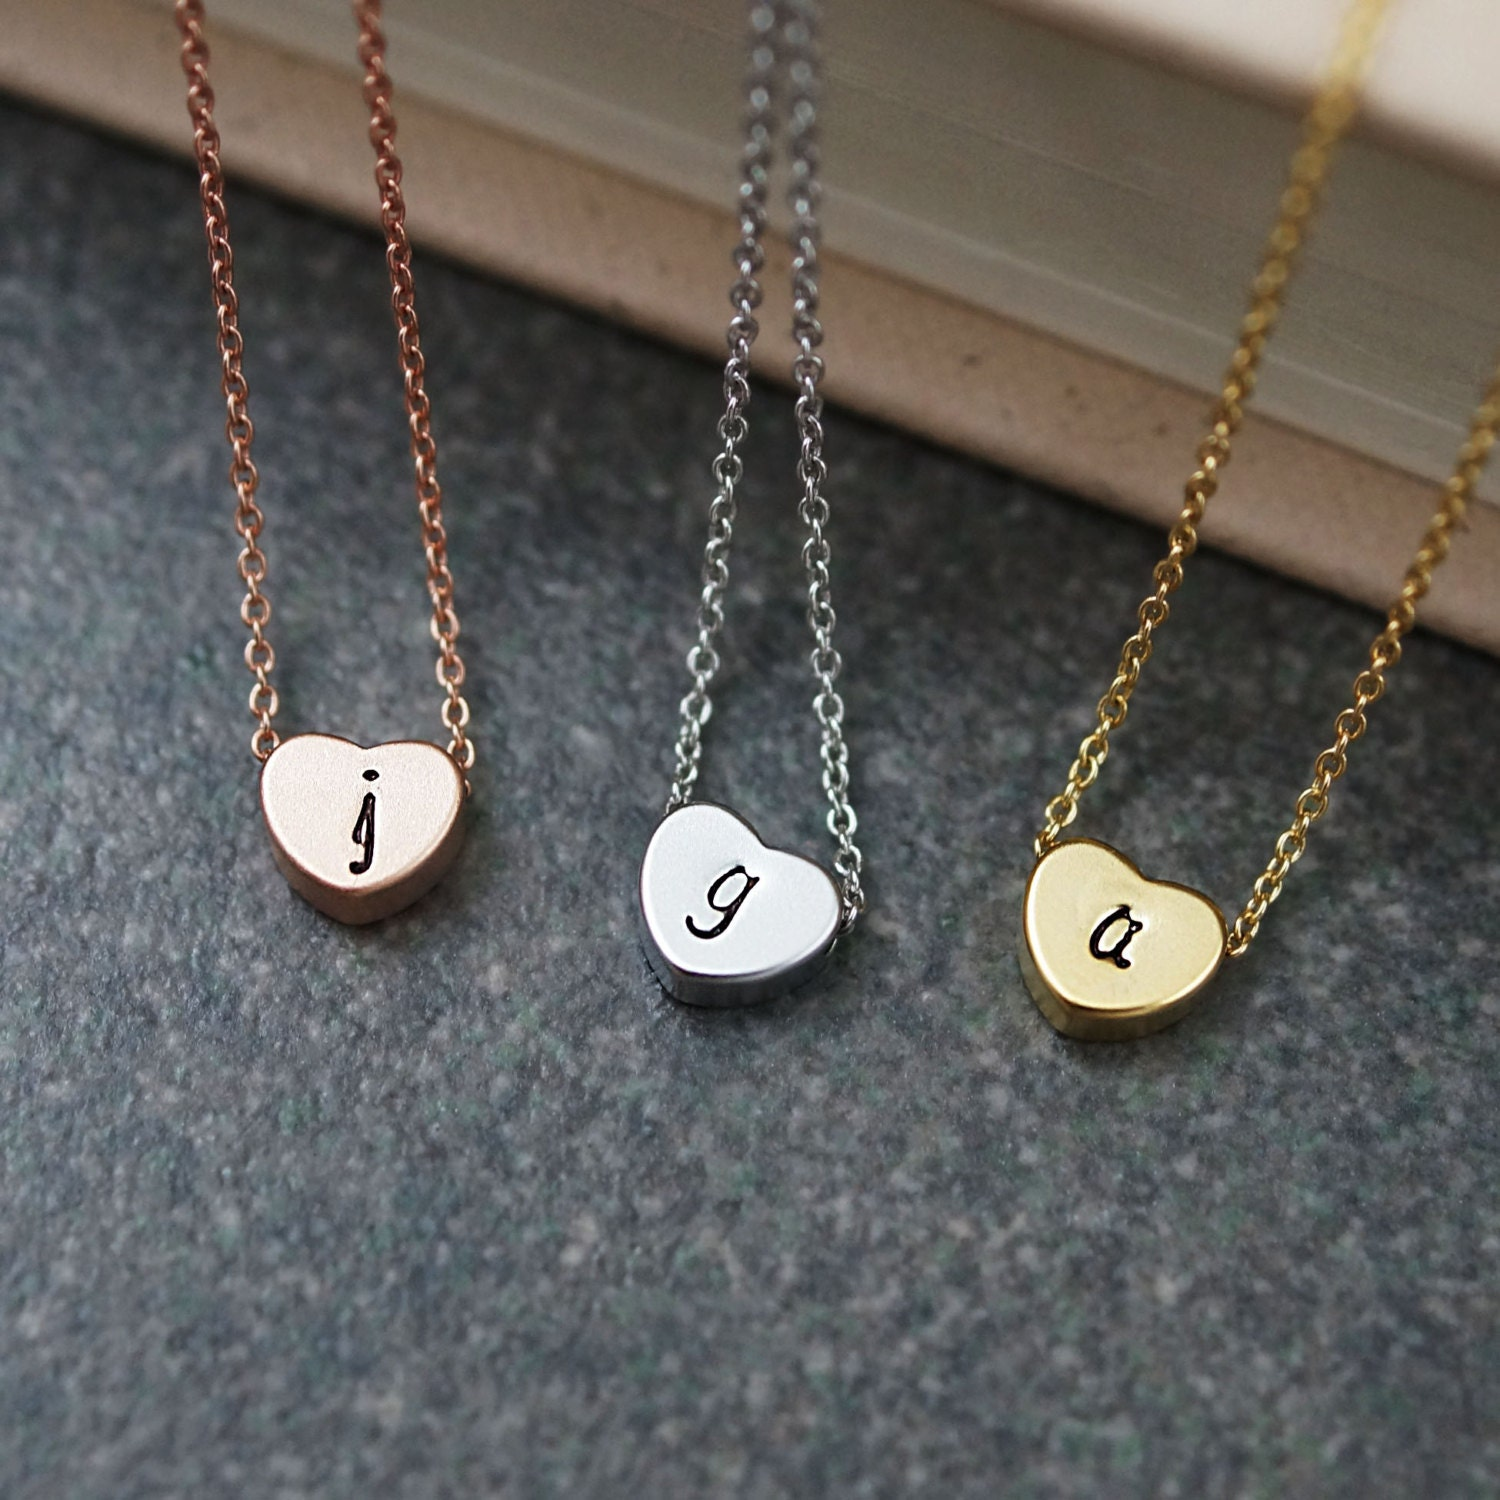 dainty heart necklace initial necklace personalized necklace